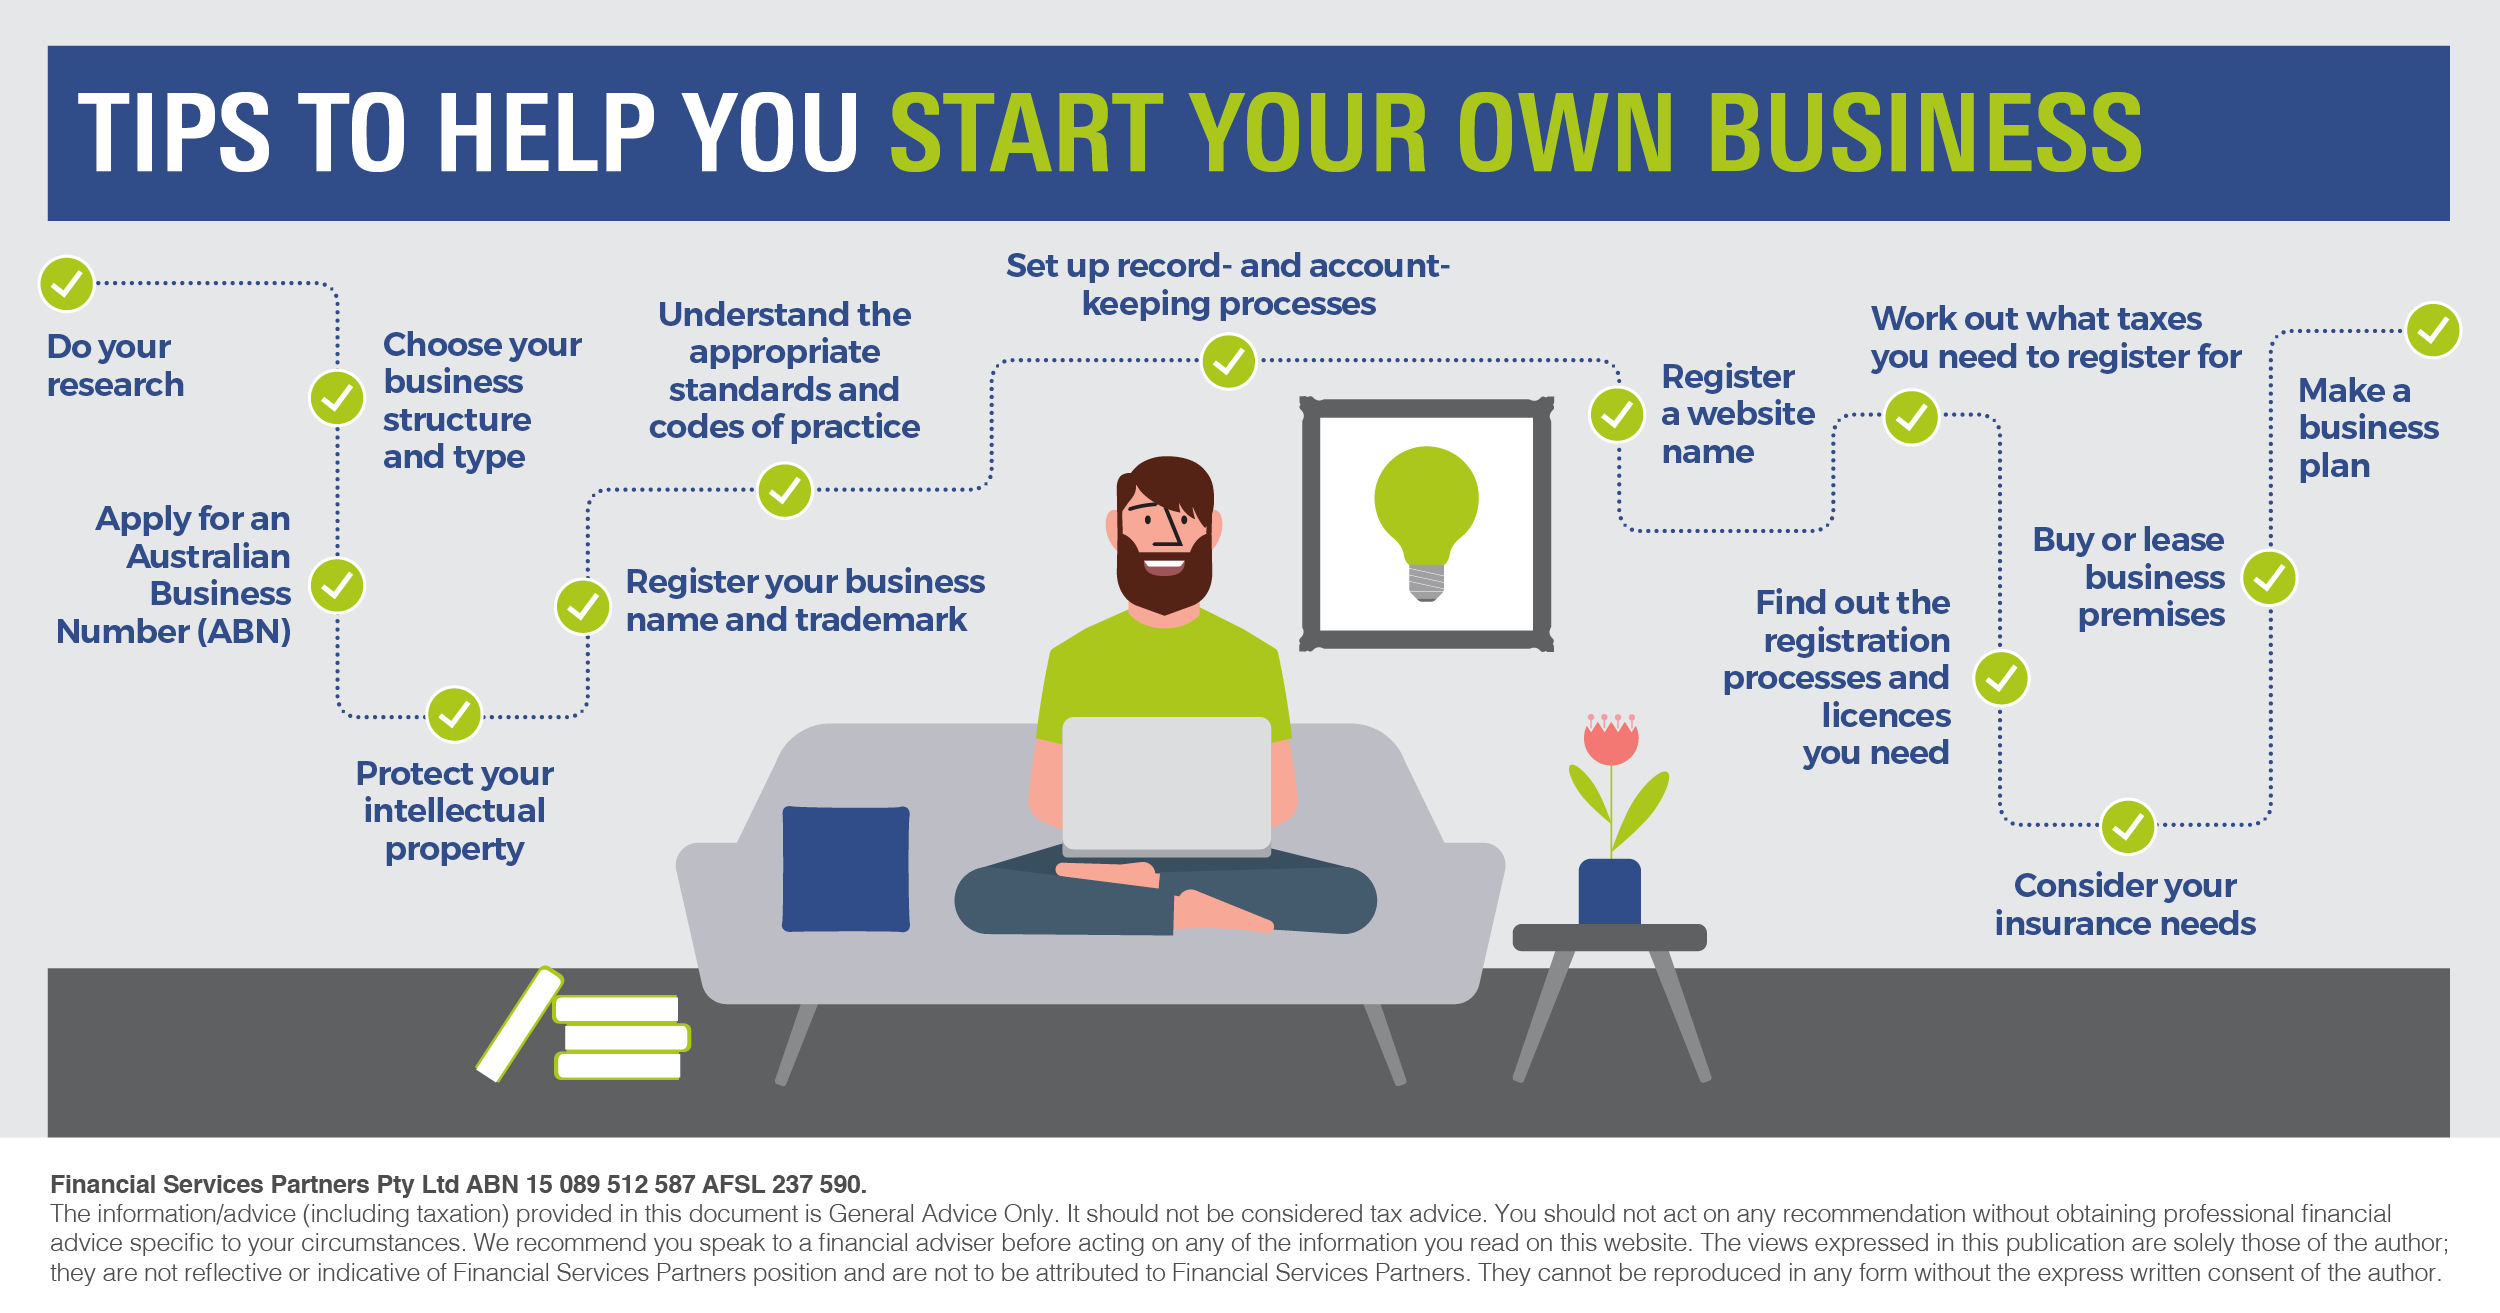 Kelly 2 MASTER:Design:Kate Hage Working:Article Hub:Social Media Infographics:Wordpress Infographics:For sharing:Infographic_start your own business_v1.png